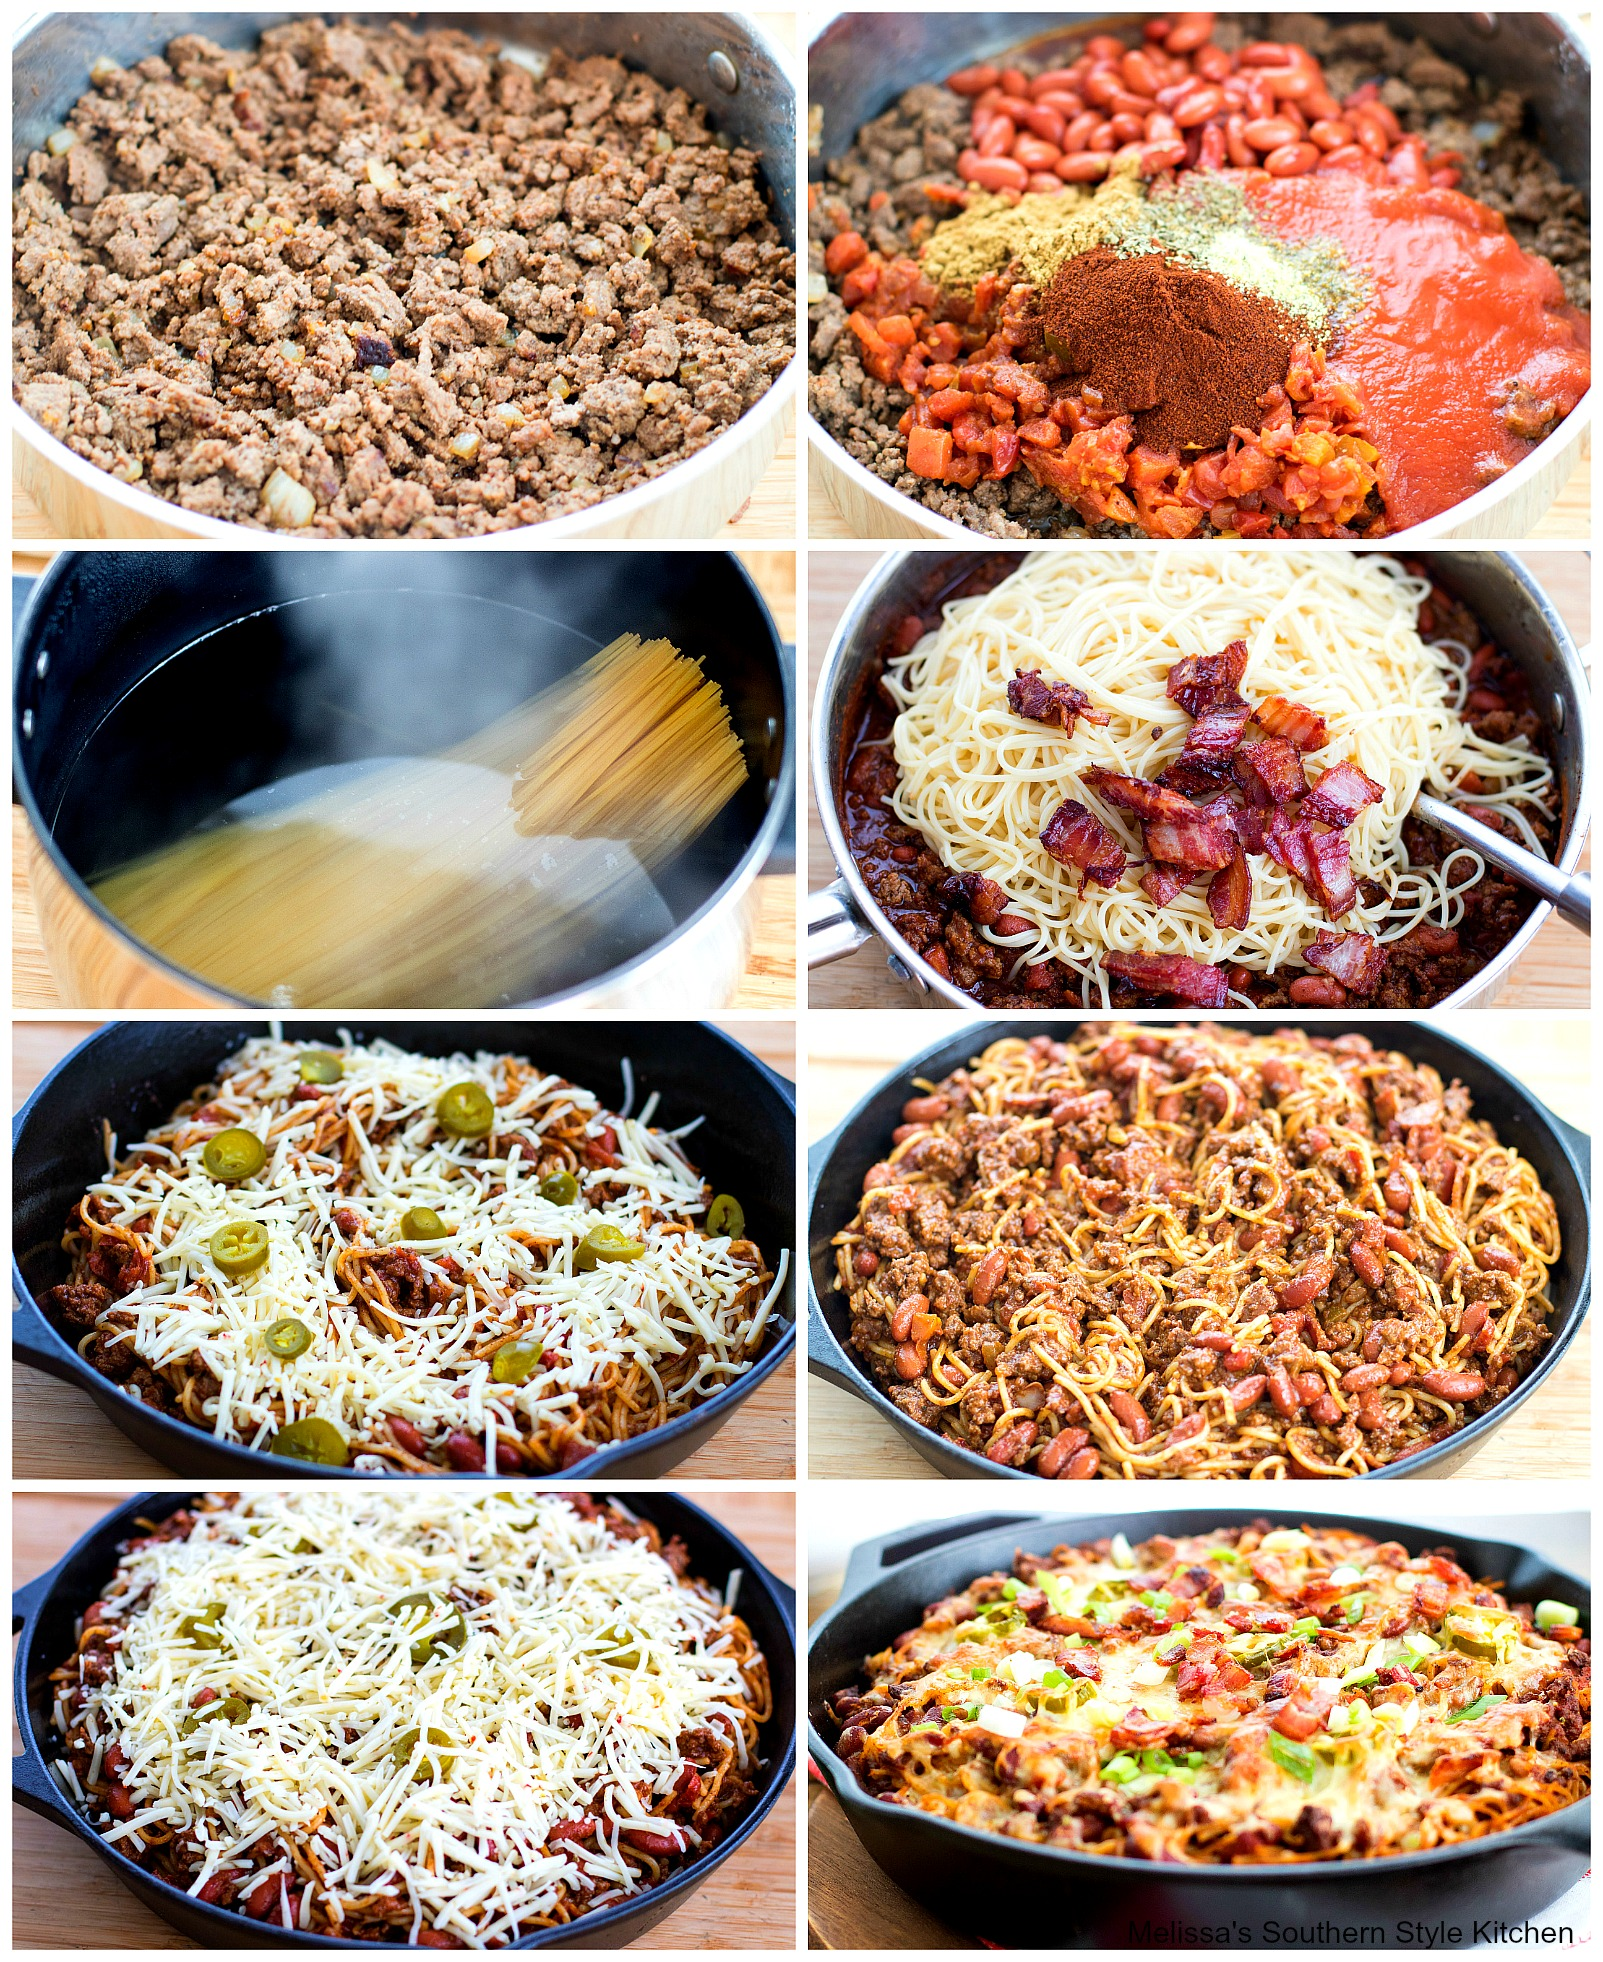 step-by-step images and ingredients for cowboy spaghetti